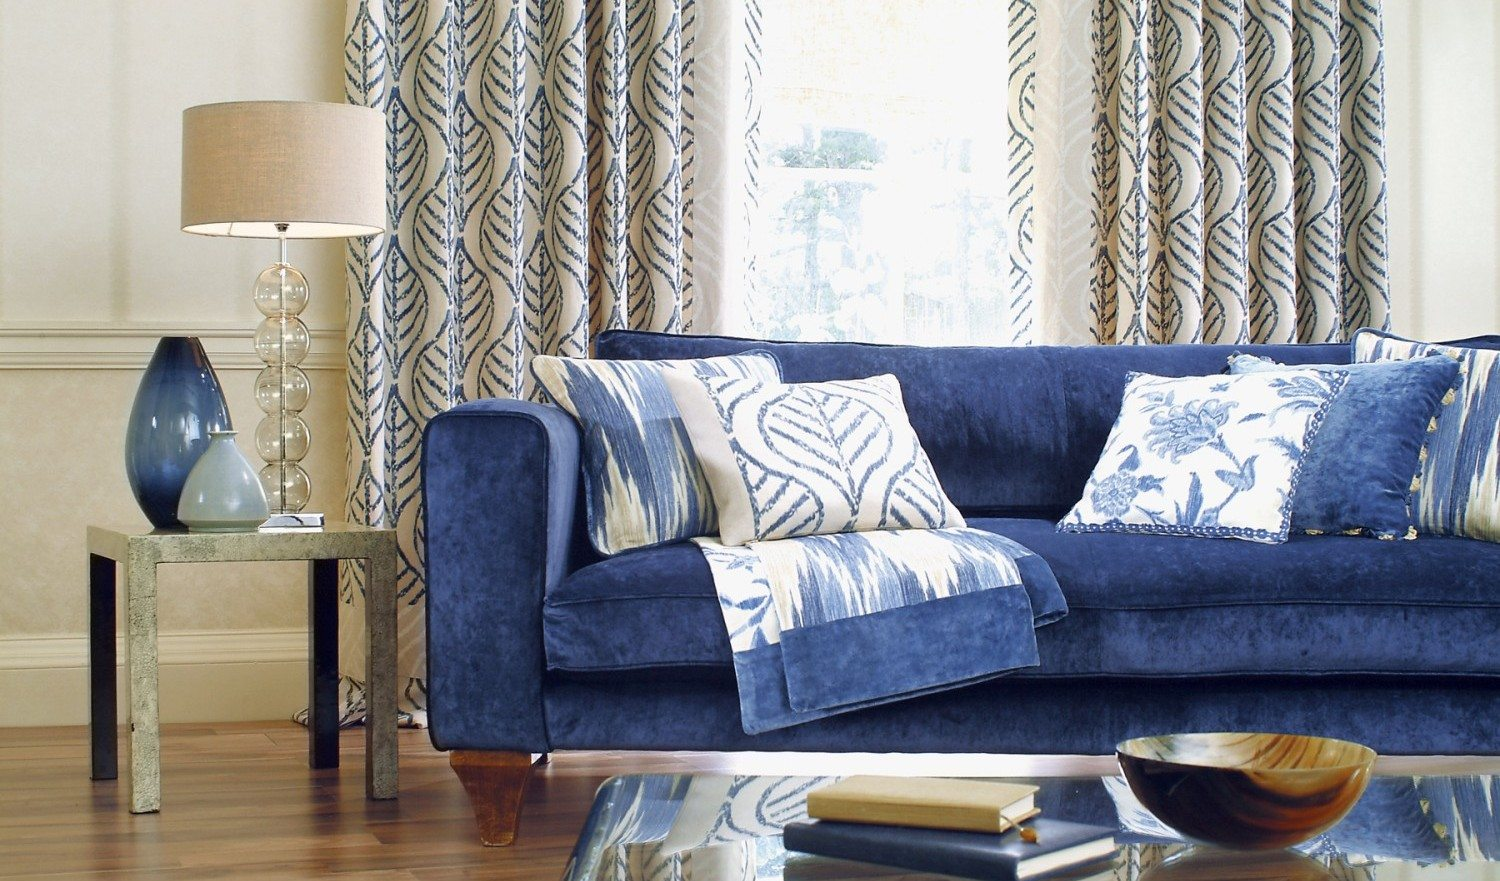 Blue sofa in a window on sunny day with table in foreground